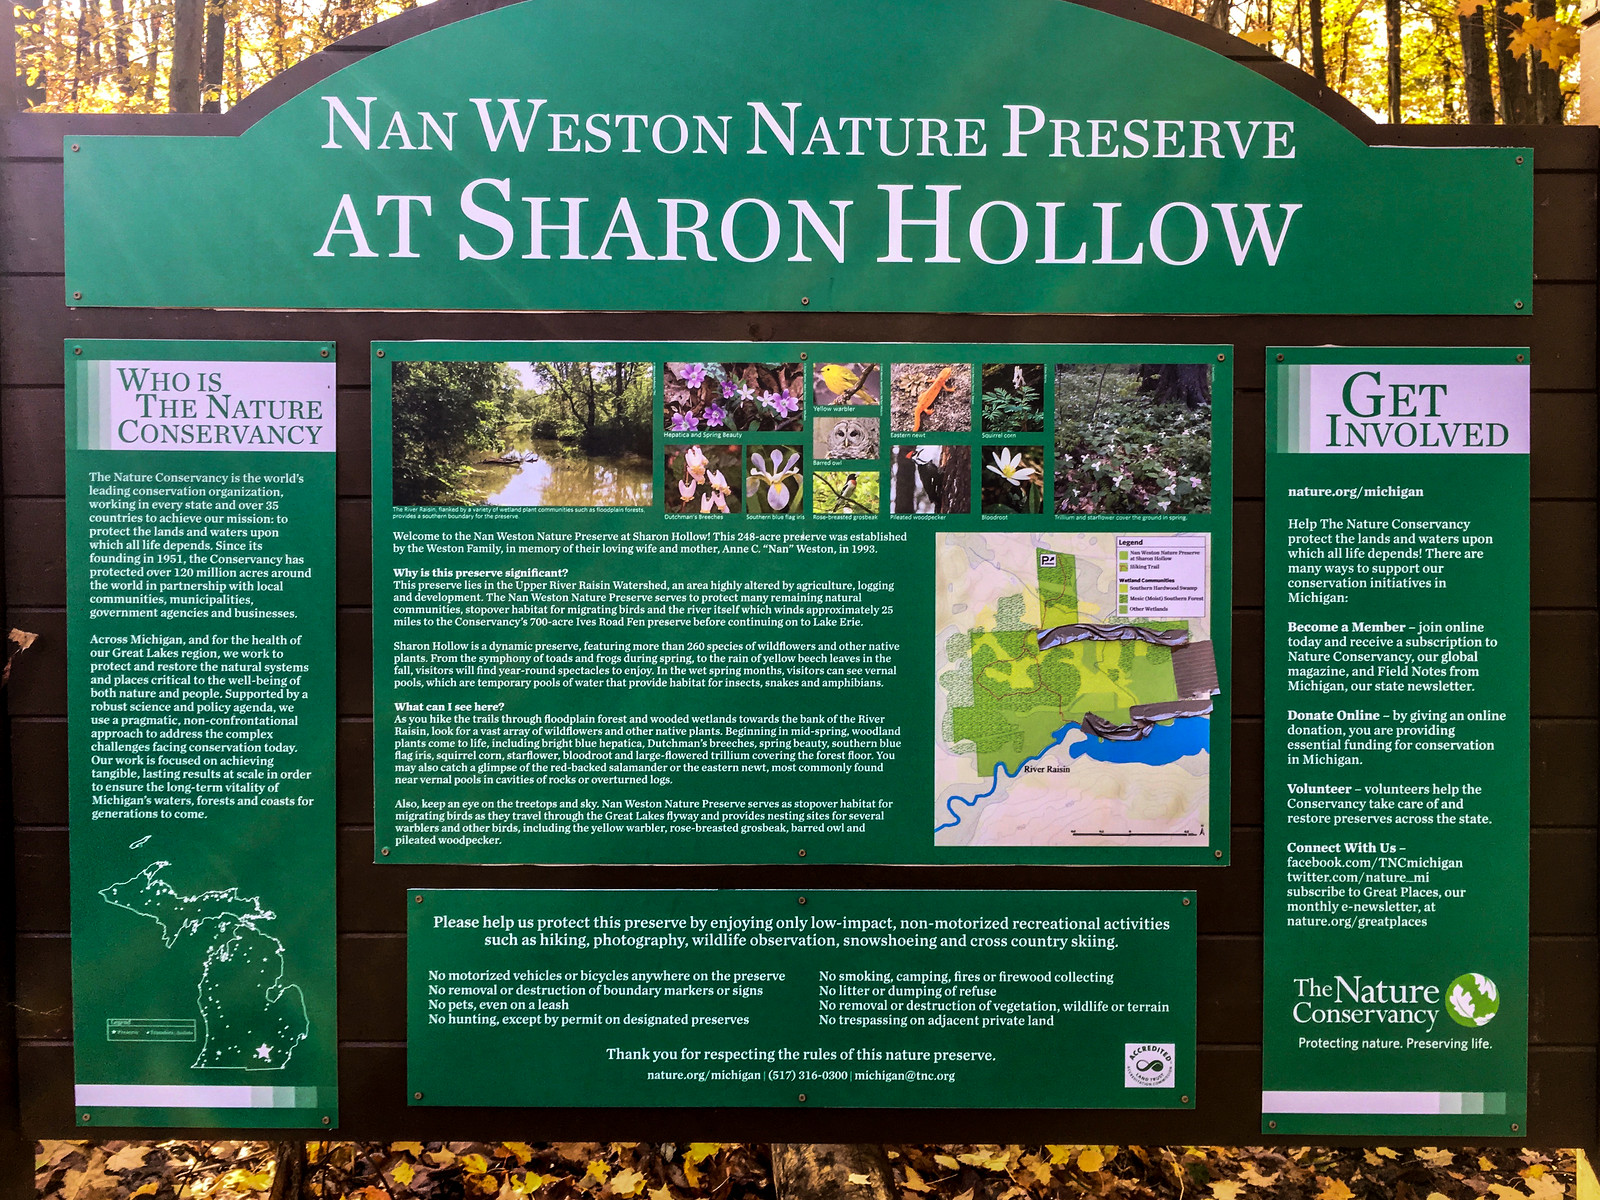 Welcome to the Nan Weston Nature Preserve